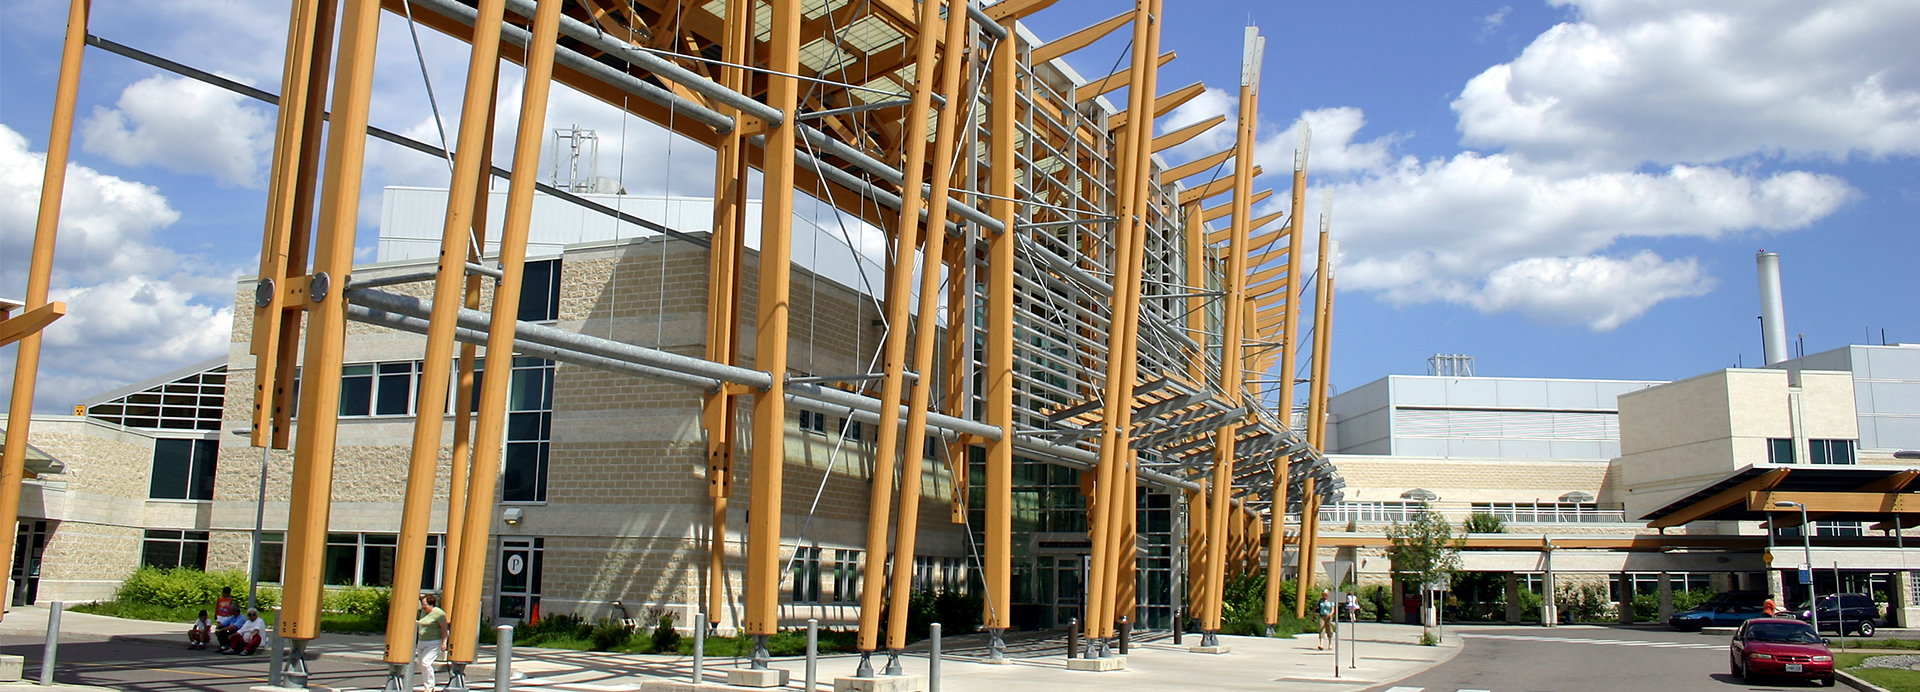 Front entrance of the Thunder Bay Regional Health Sciences Centre